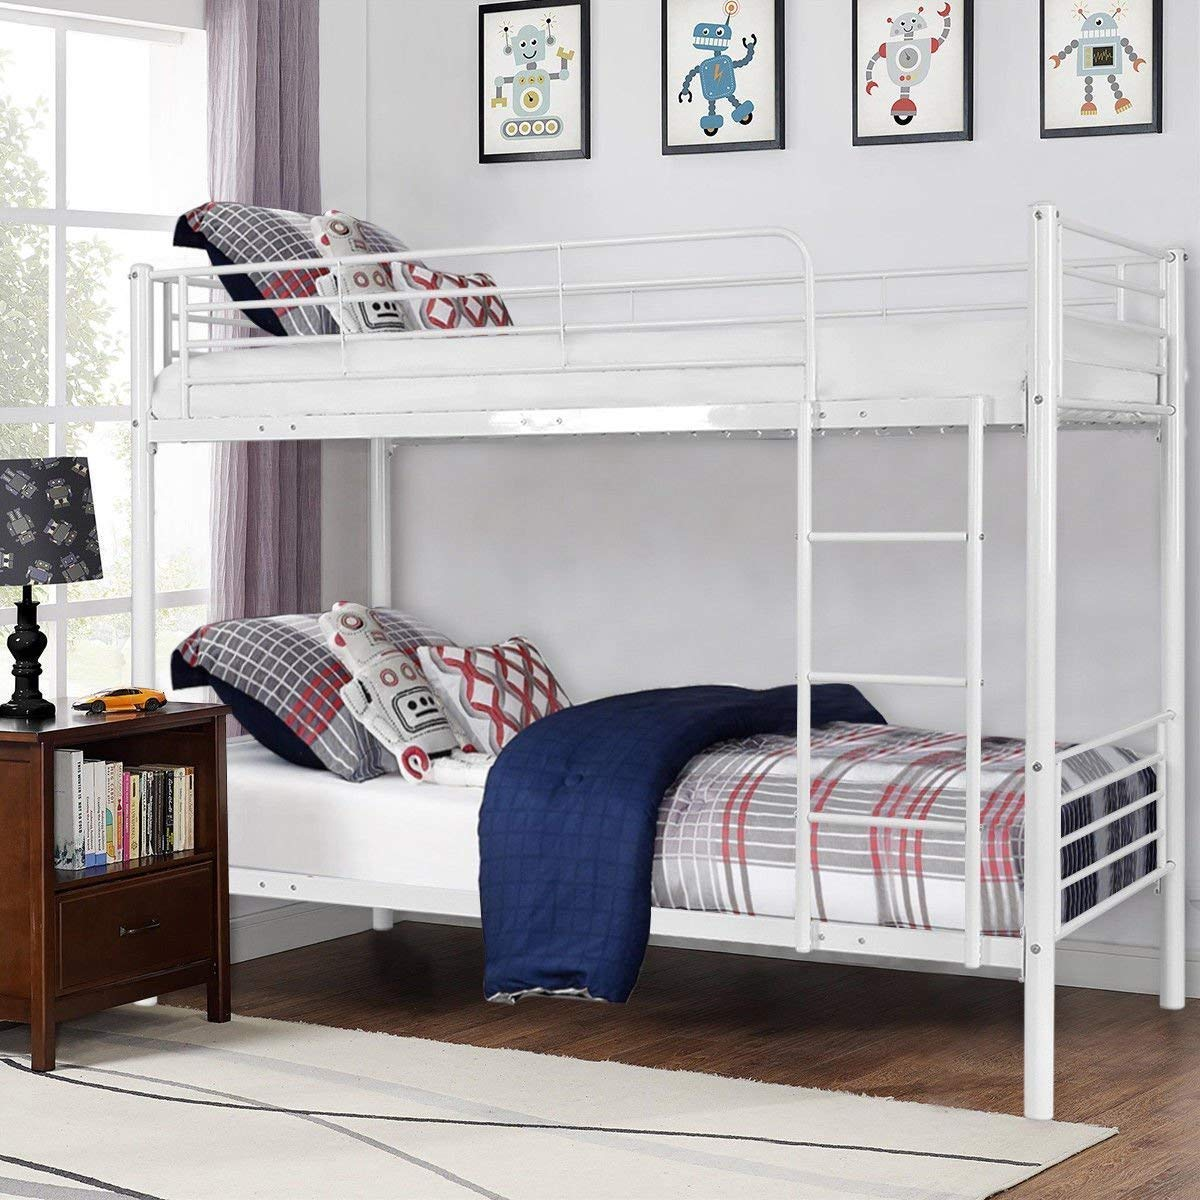 Costzon Twin Over Twin Bunk Bed, Metal Frame with Ladder Guard Rail for Boys & Girls Teens Kids Bedroom Dorm (White)